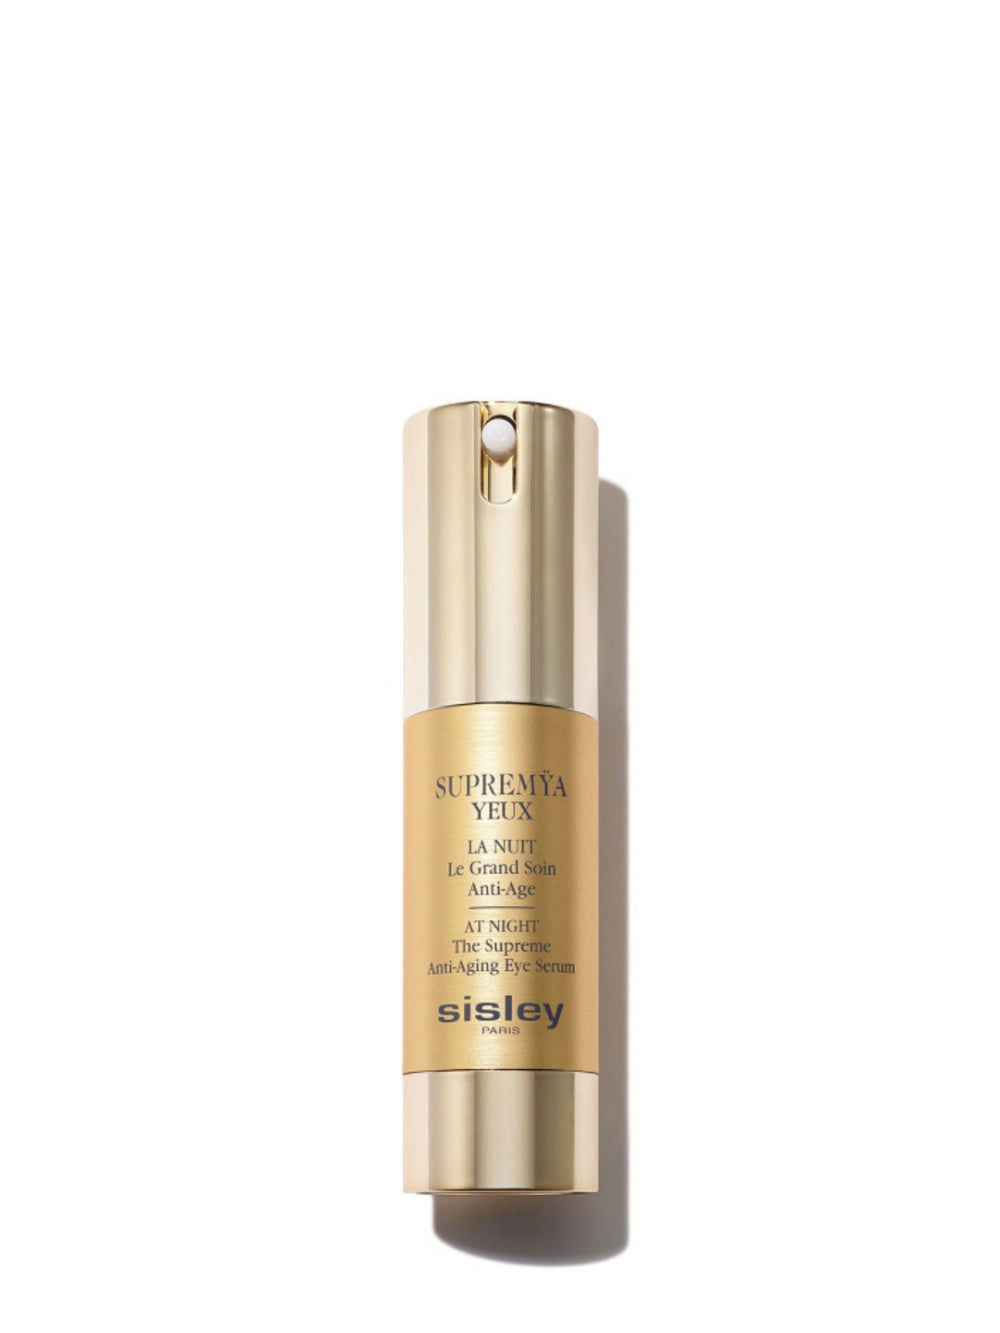 sisley-paris-supremya-yeux-la-nuit-the-supreme-anti-ageing-eye-serum